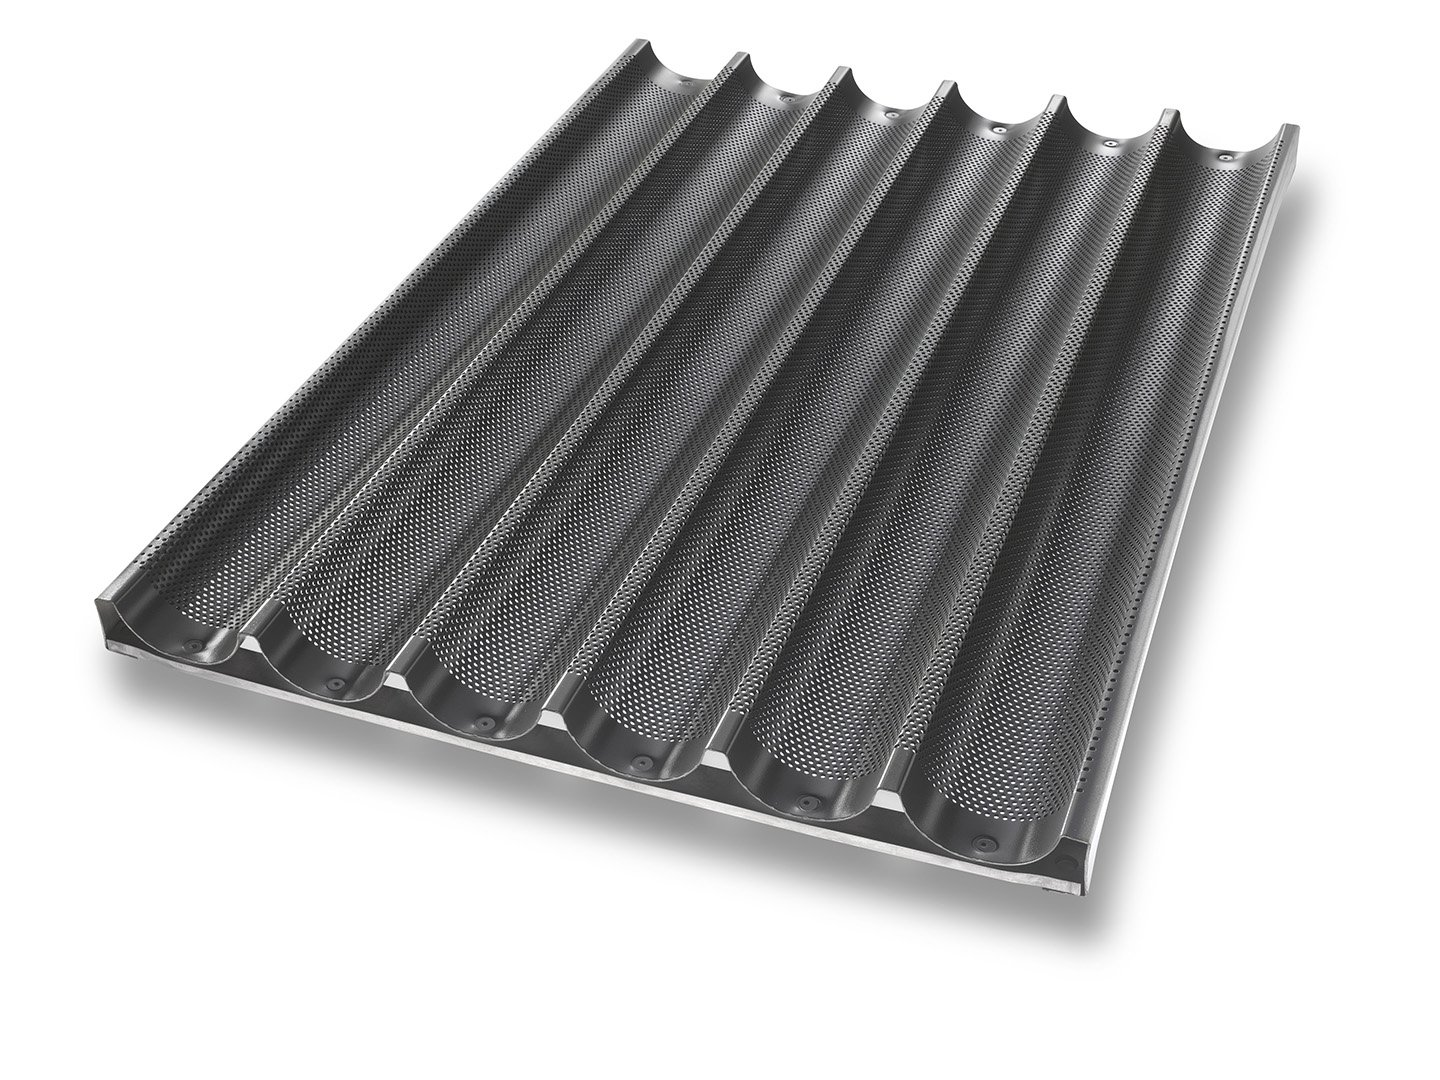 6 Channel Baguette Tray - DuraShield® Coating